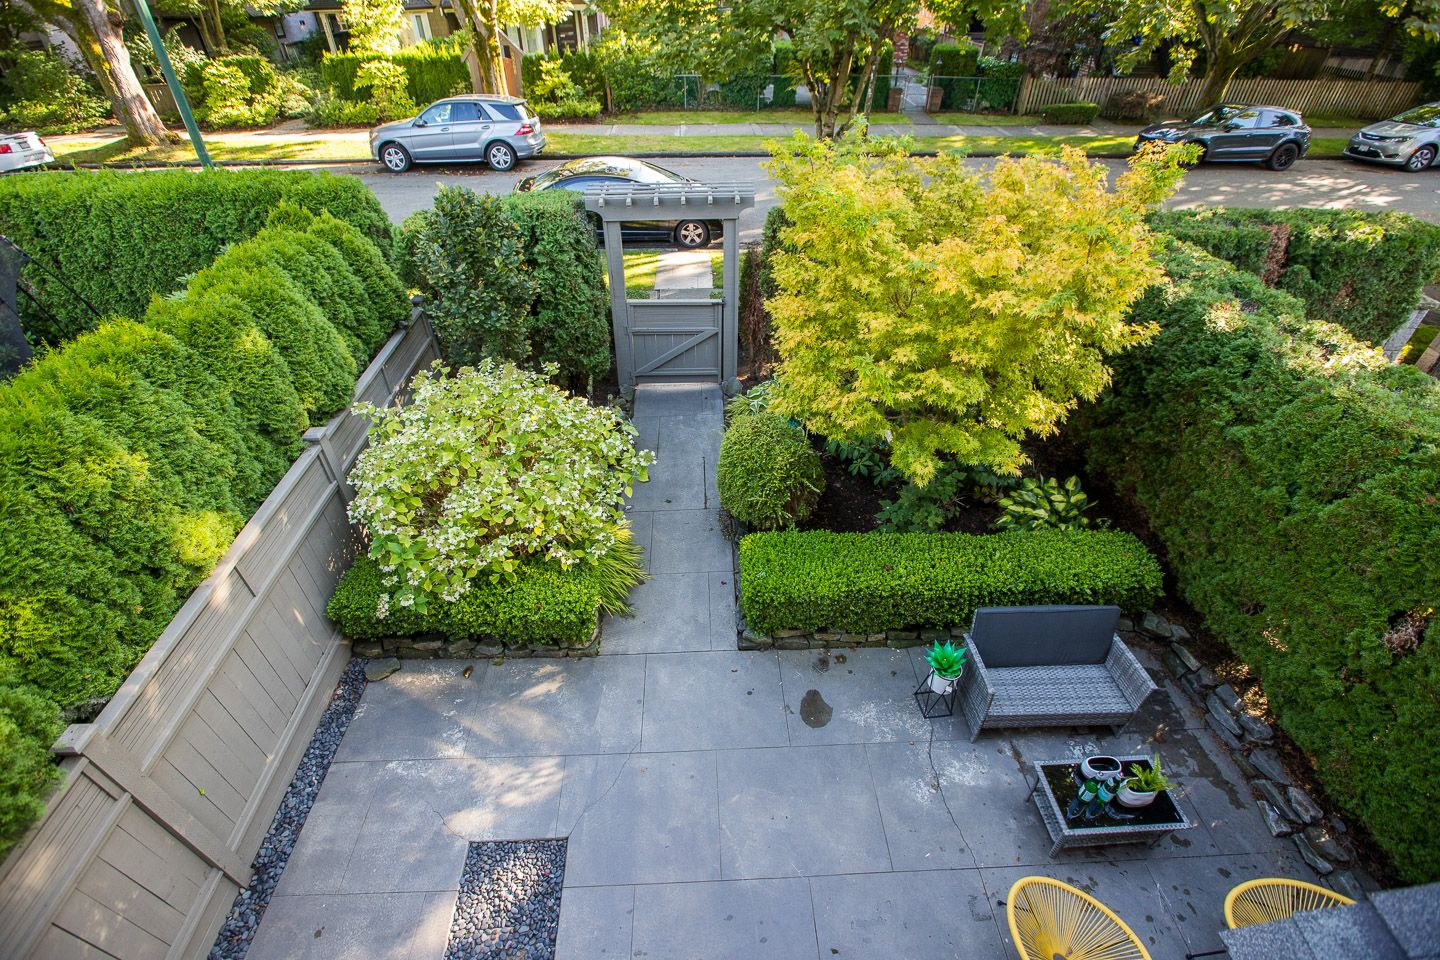 Photo 13: Photos: 2267 WEST 13TH AV in VANCOUVER: Kitsilano 1/2 Duplex for sale (Vancouver West)  : MLS®# R2407976